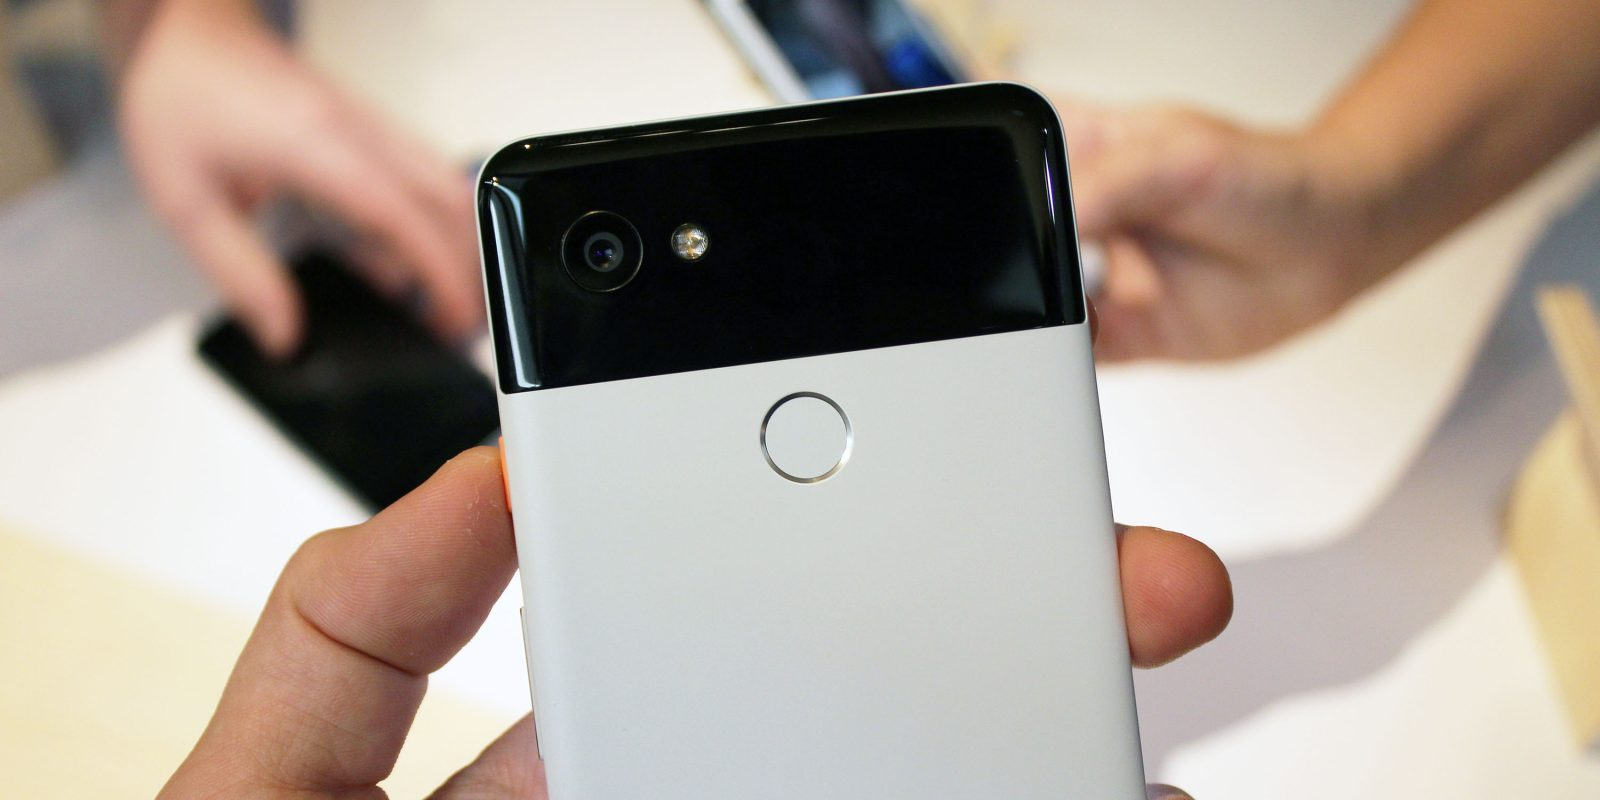 PSA: The Black & White 'Panda' Google Pixel 2 XL is back in stock… for now